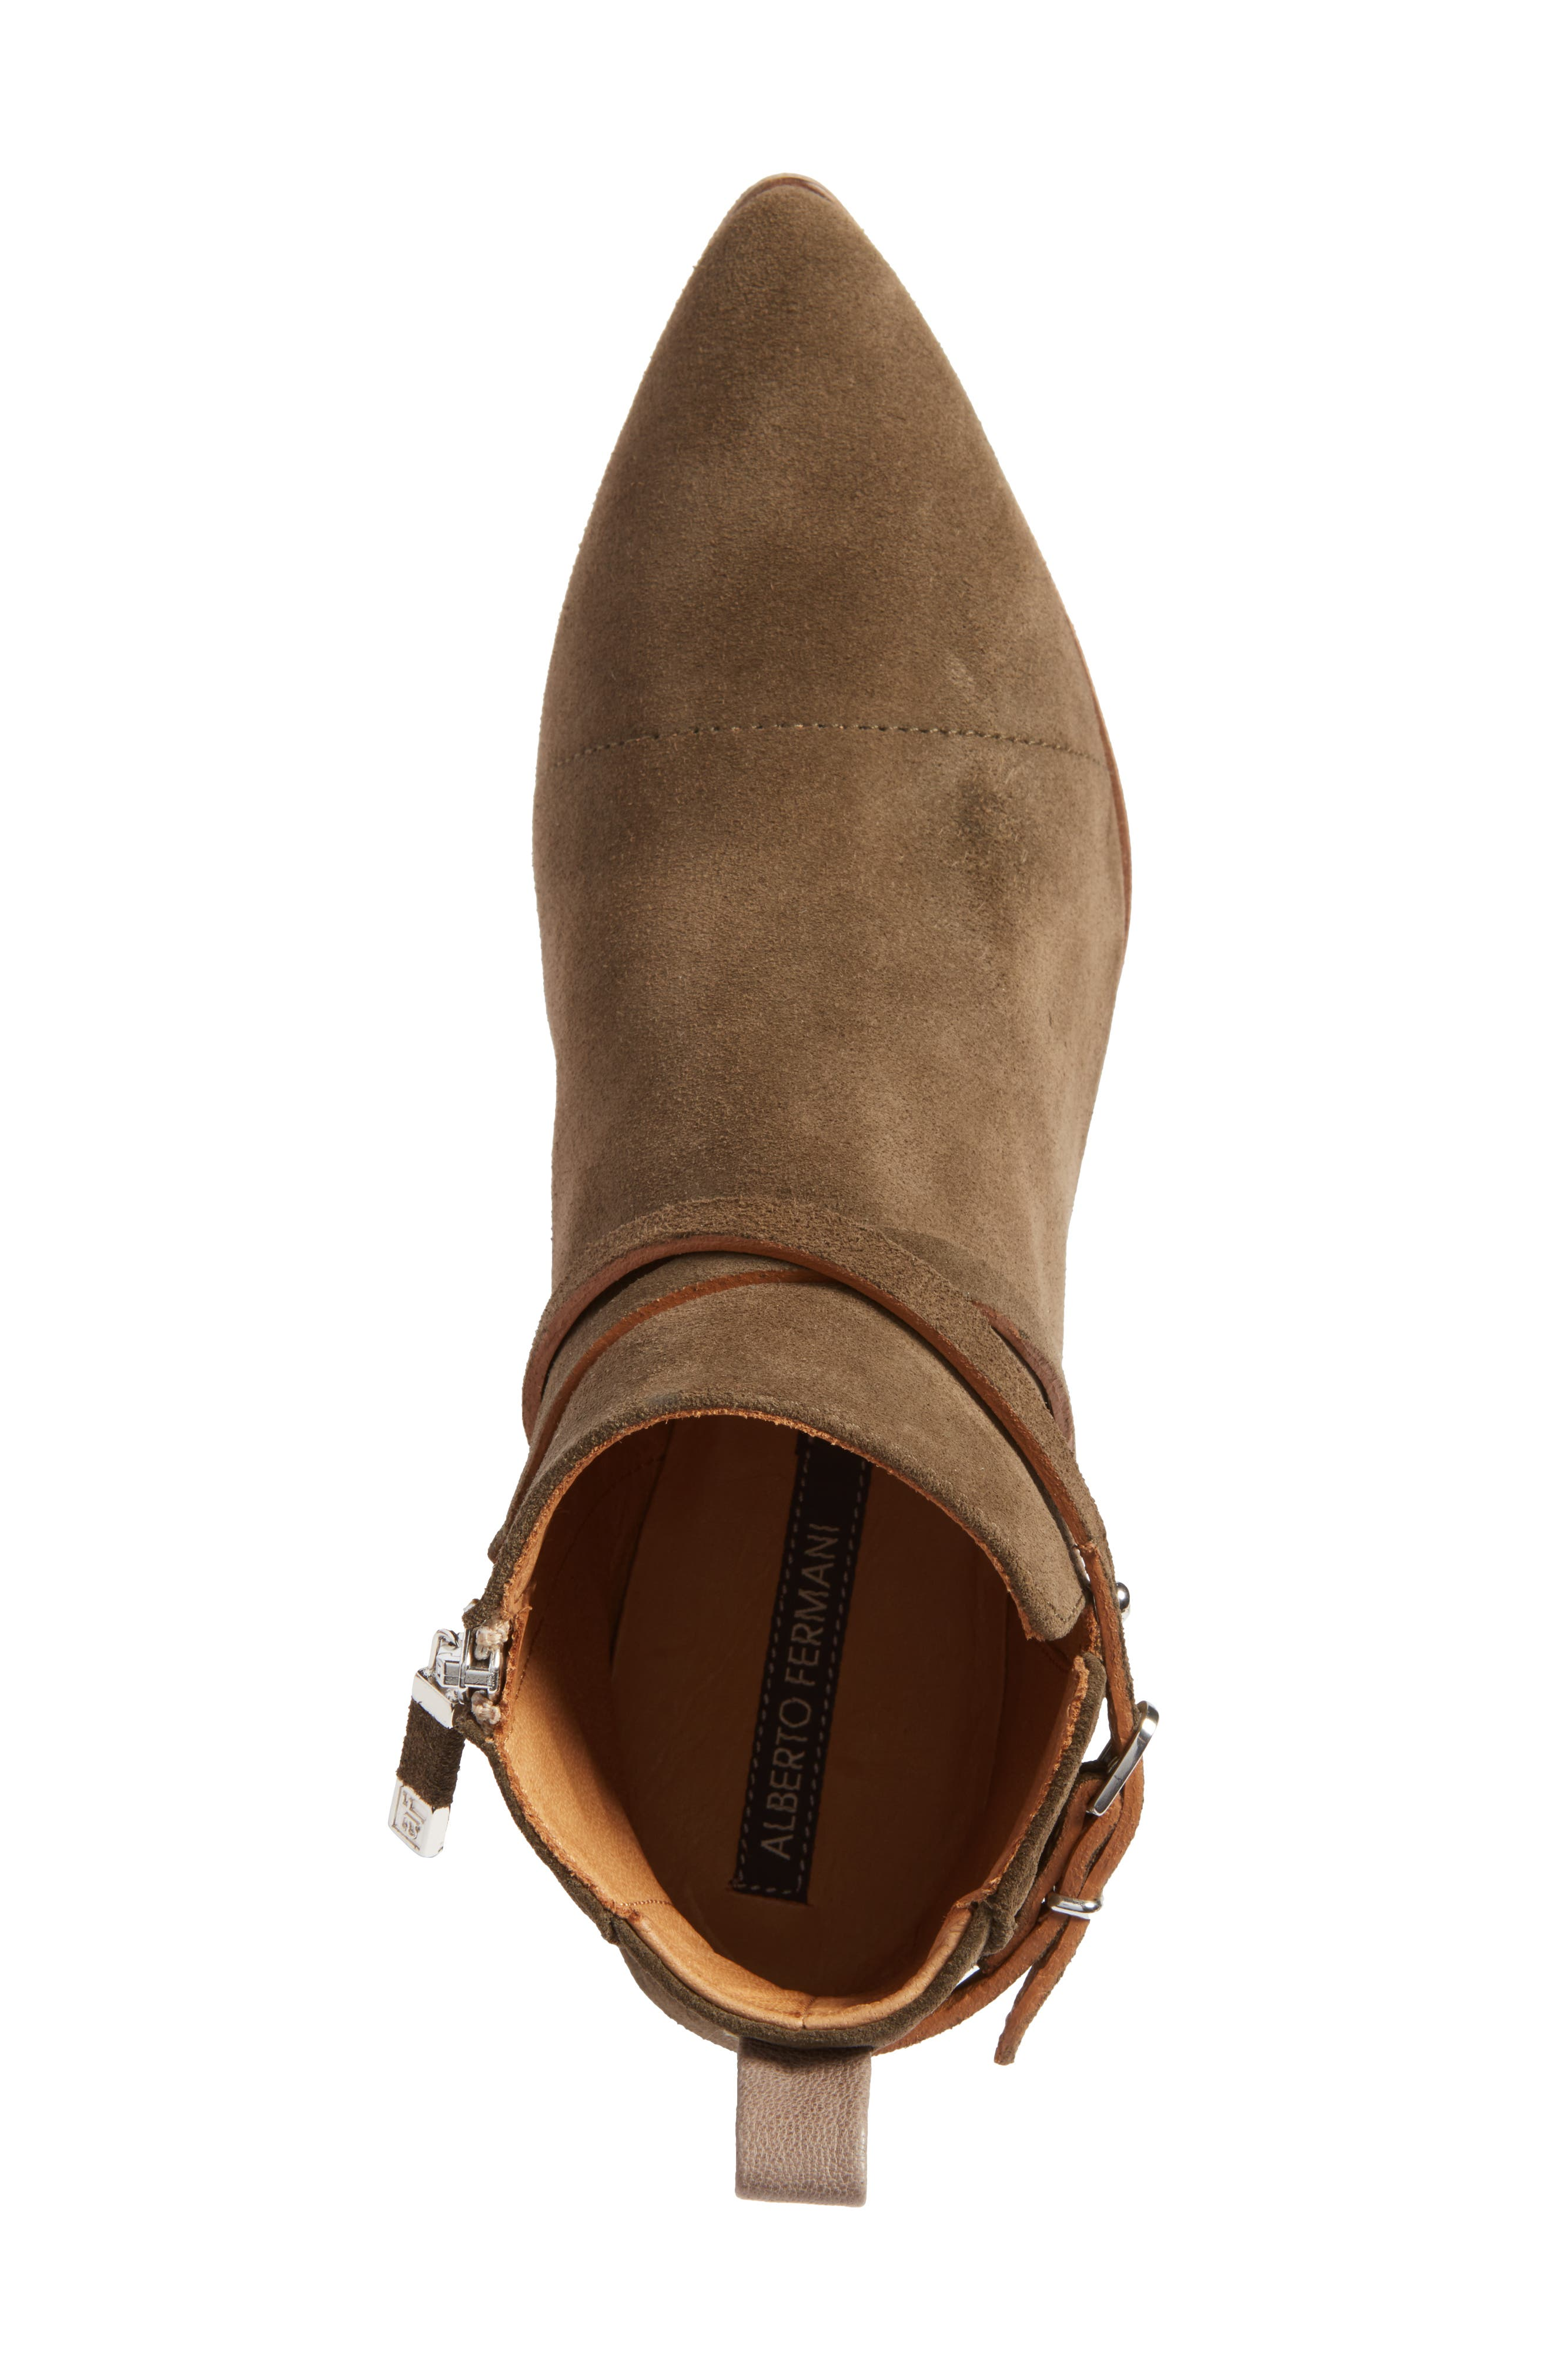 'Mea' Ankle Boot,                             Alternate thumbnail 23, color,